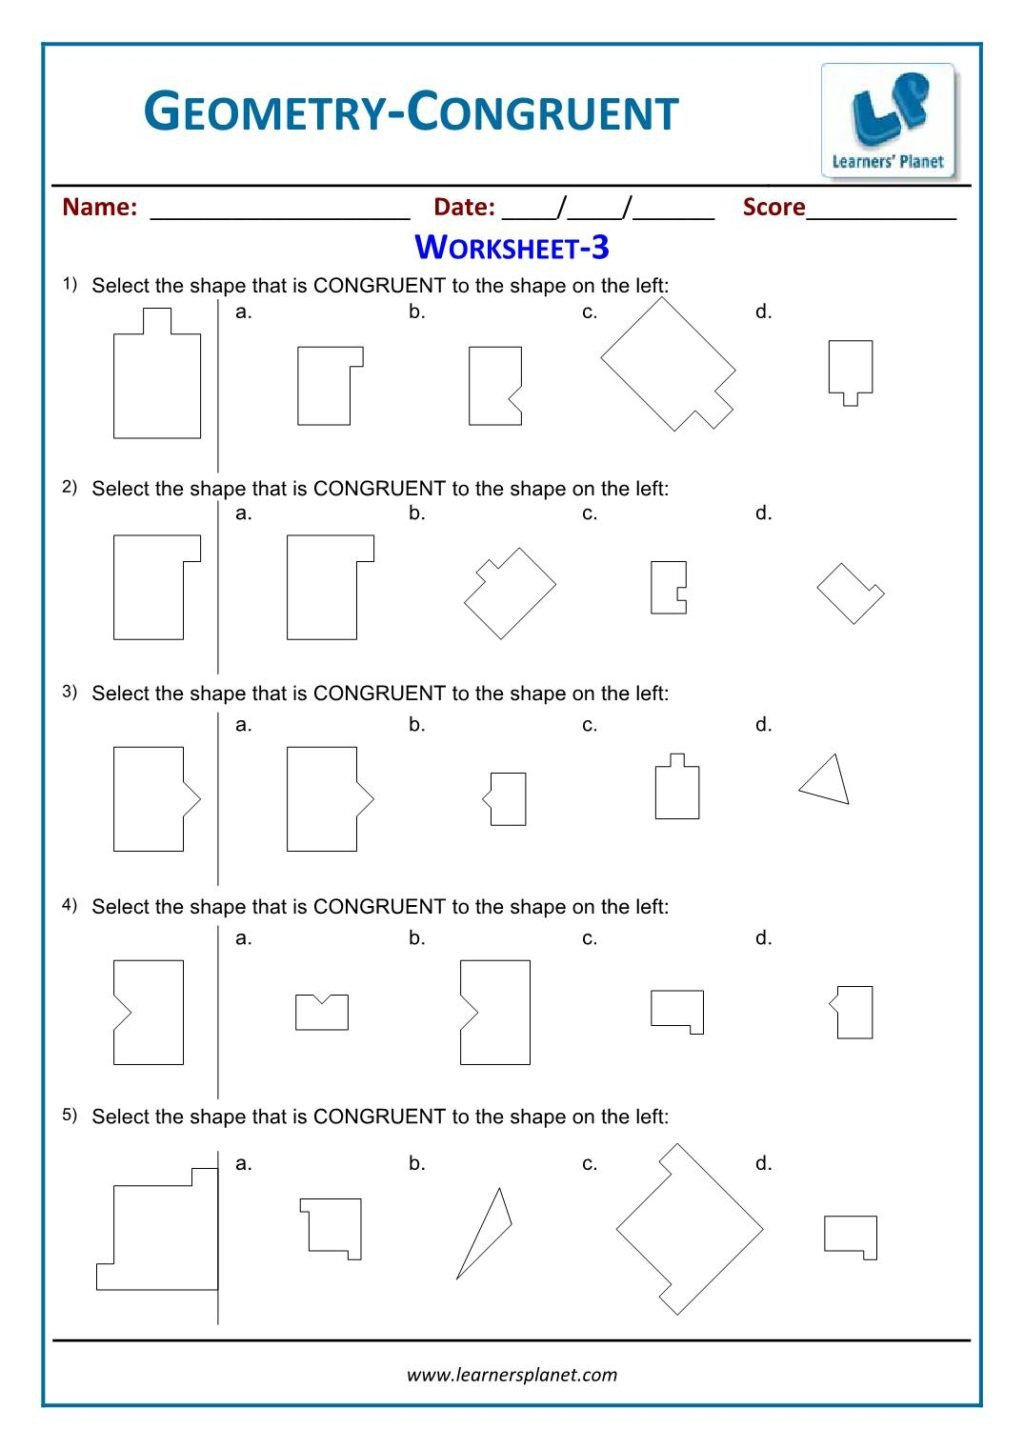 Translations Geometry Worksheets Worksheet Transformation Geometry Worksheets 2nd Grade